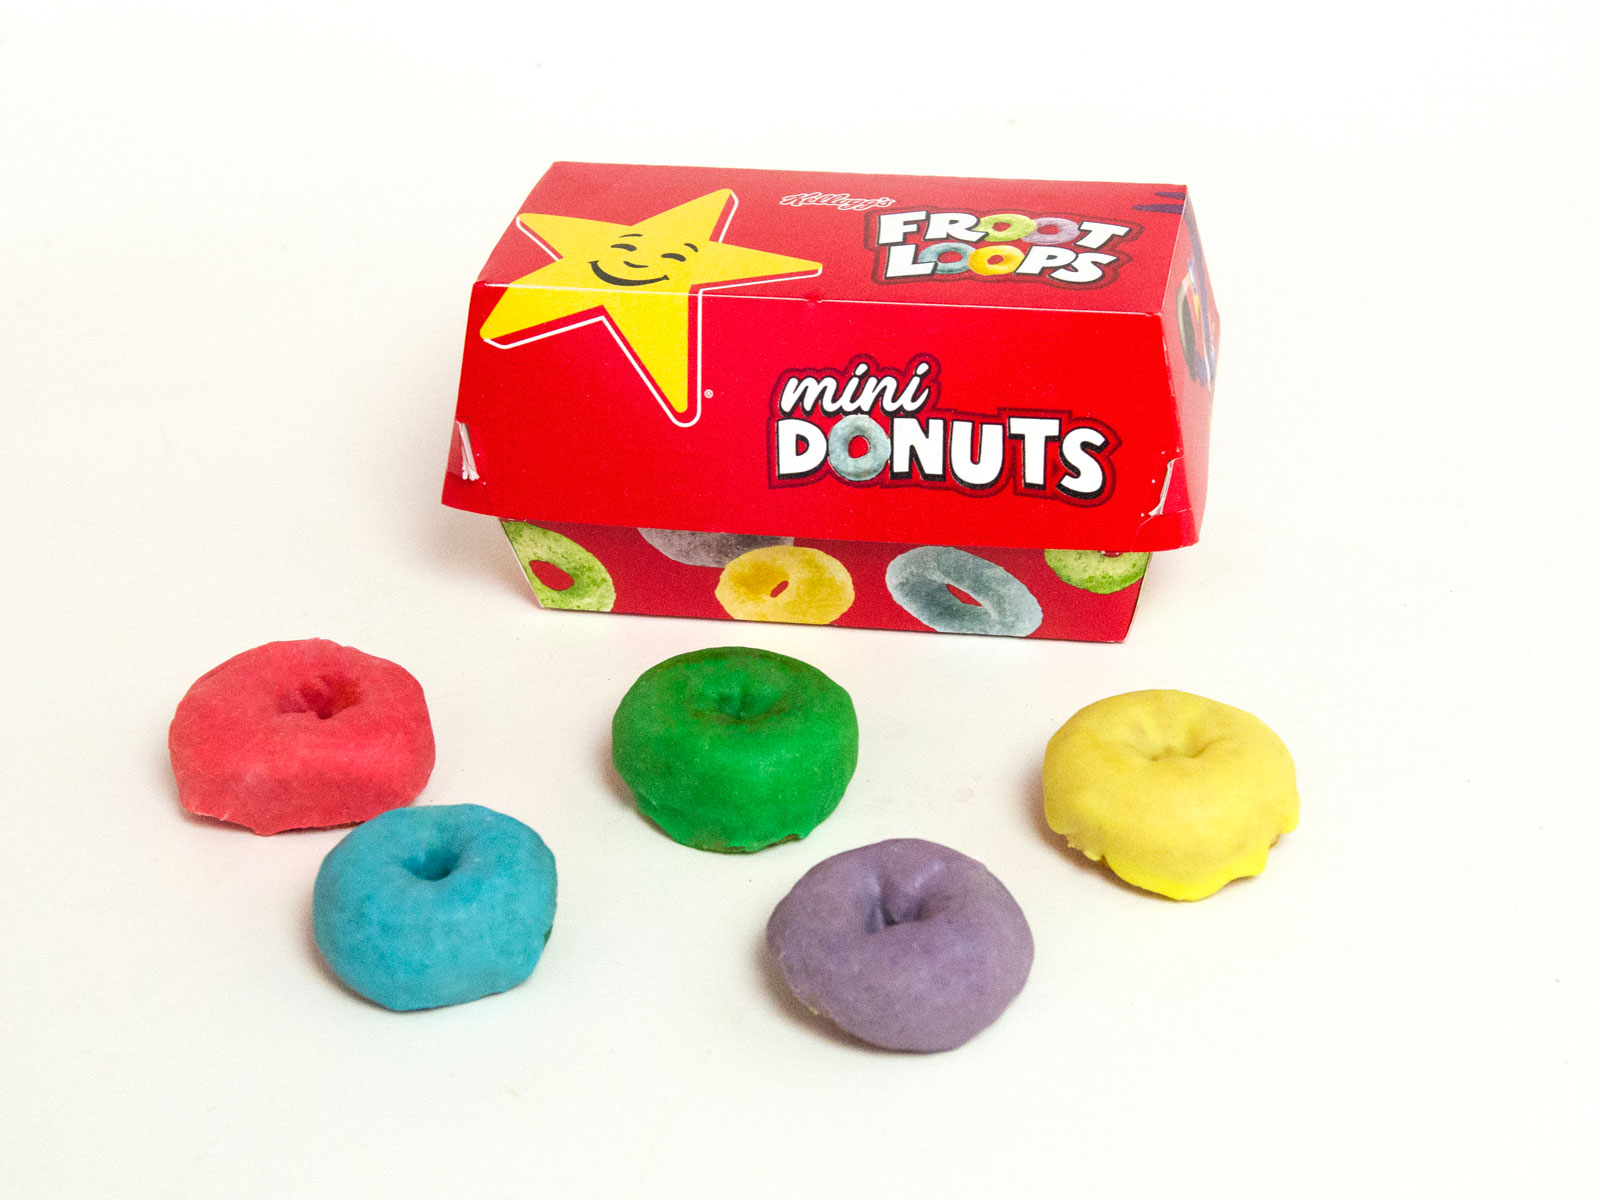 froot-loops-donuts-box-FT-BLOG0818.jpg